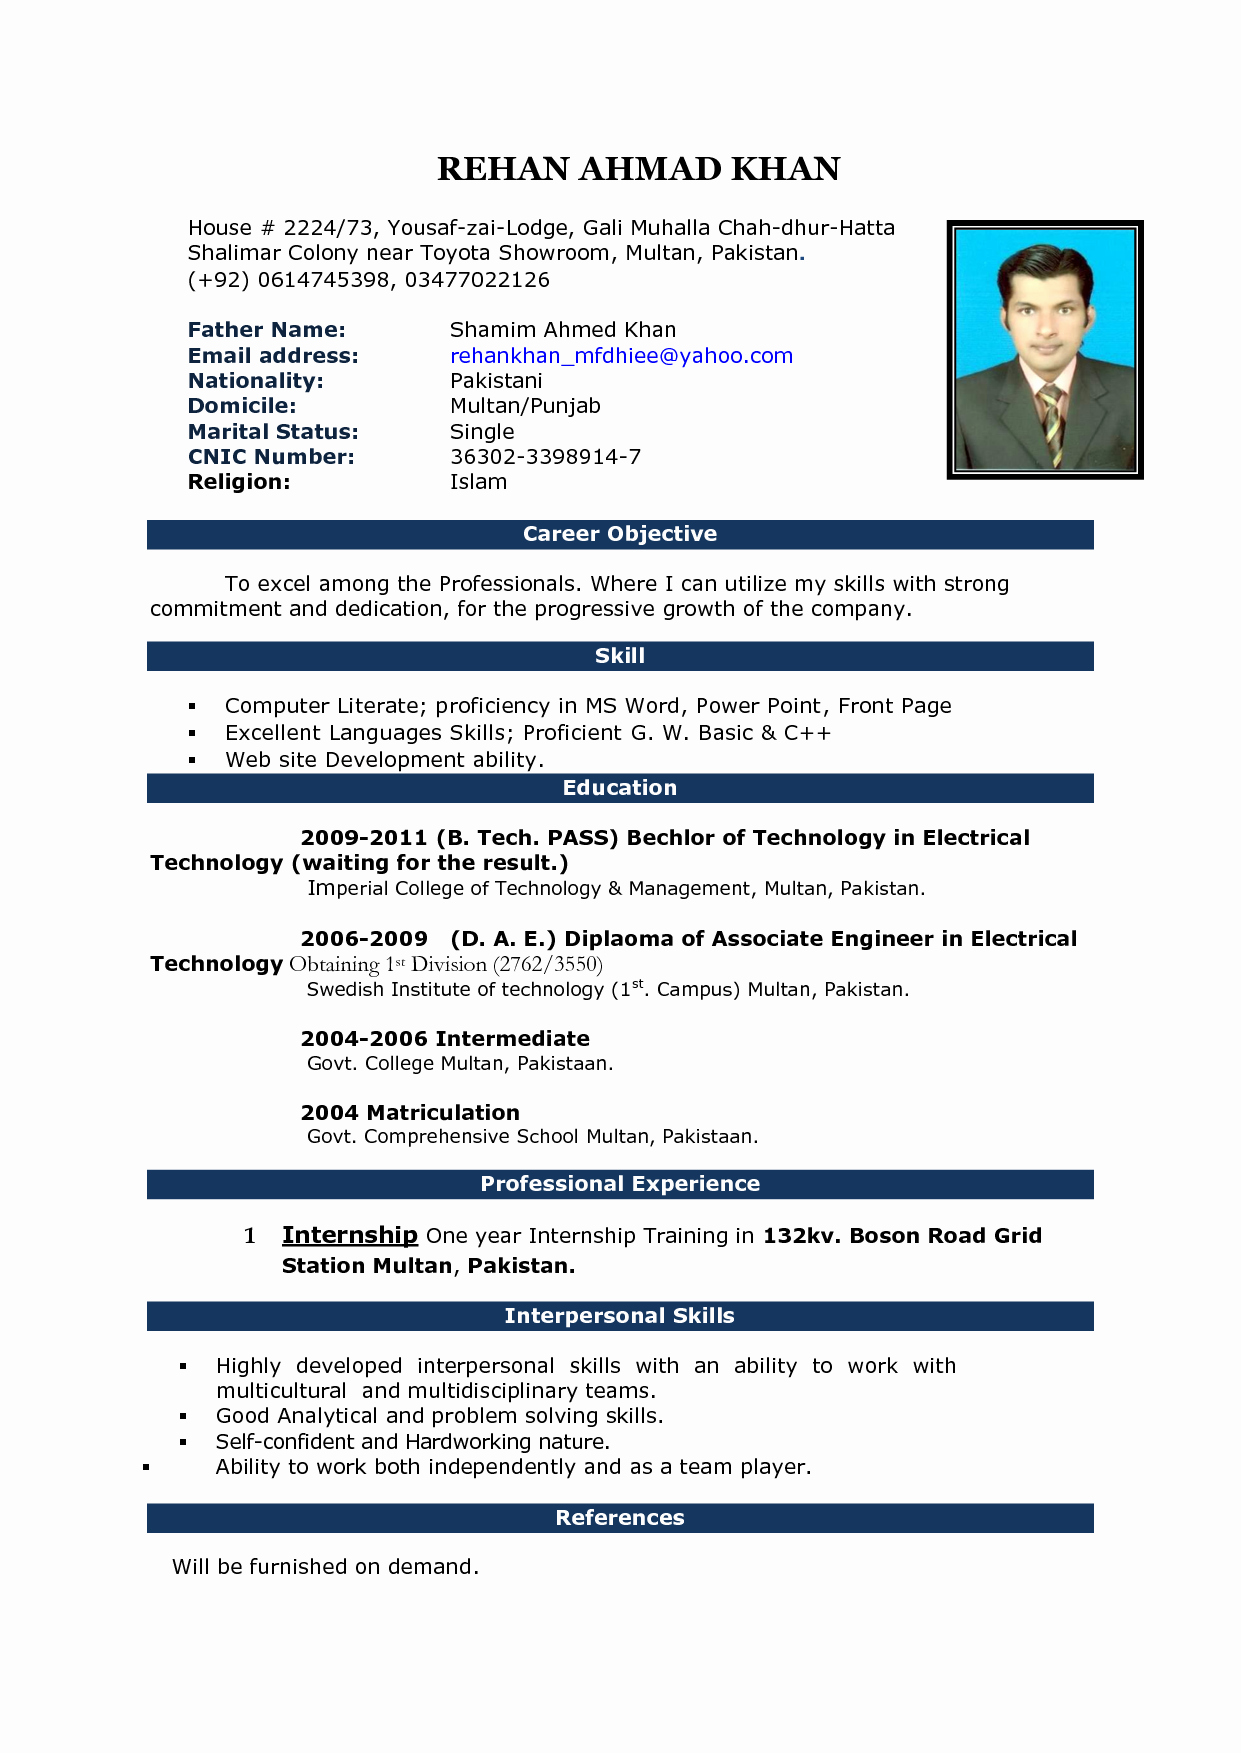 Resume format In Microsoft Word Best Of Image Result for Cv format In Ms Word 2007 Free